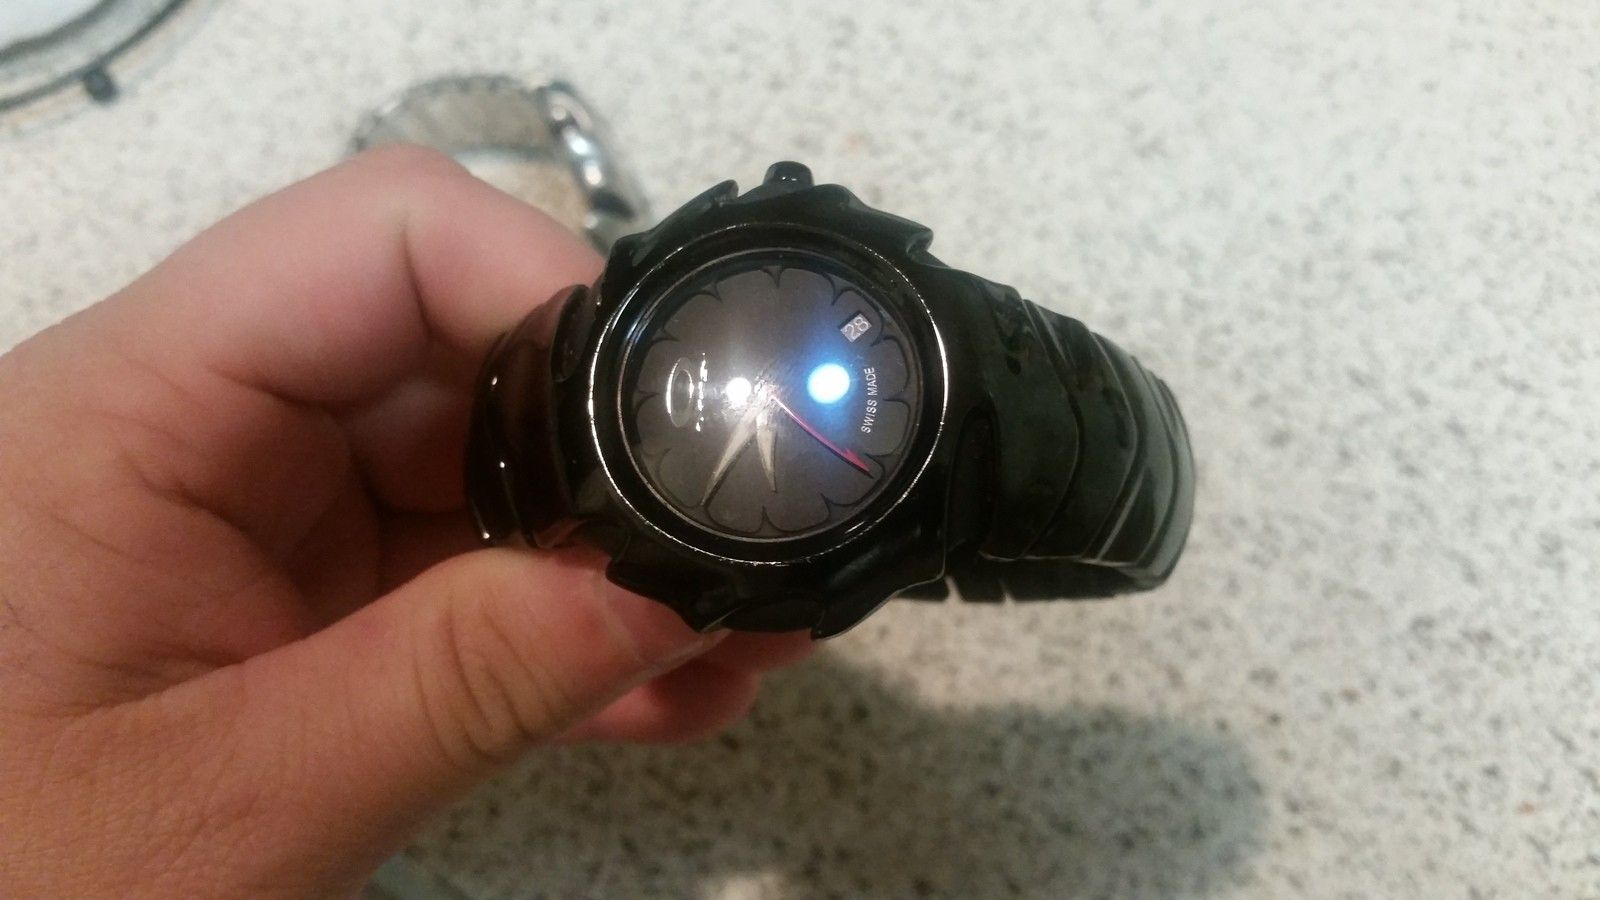 Oakley blade watches - uploadfromtaptalk1439676321807.jpg